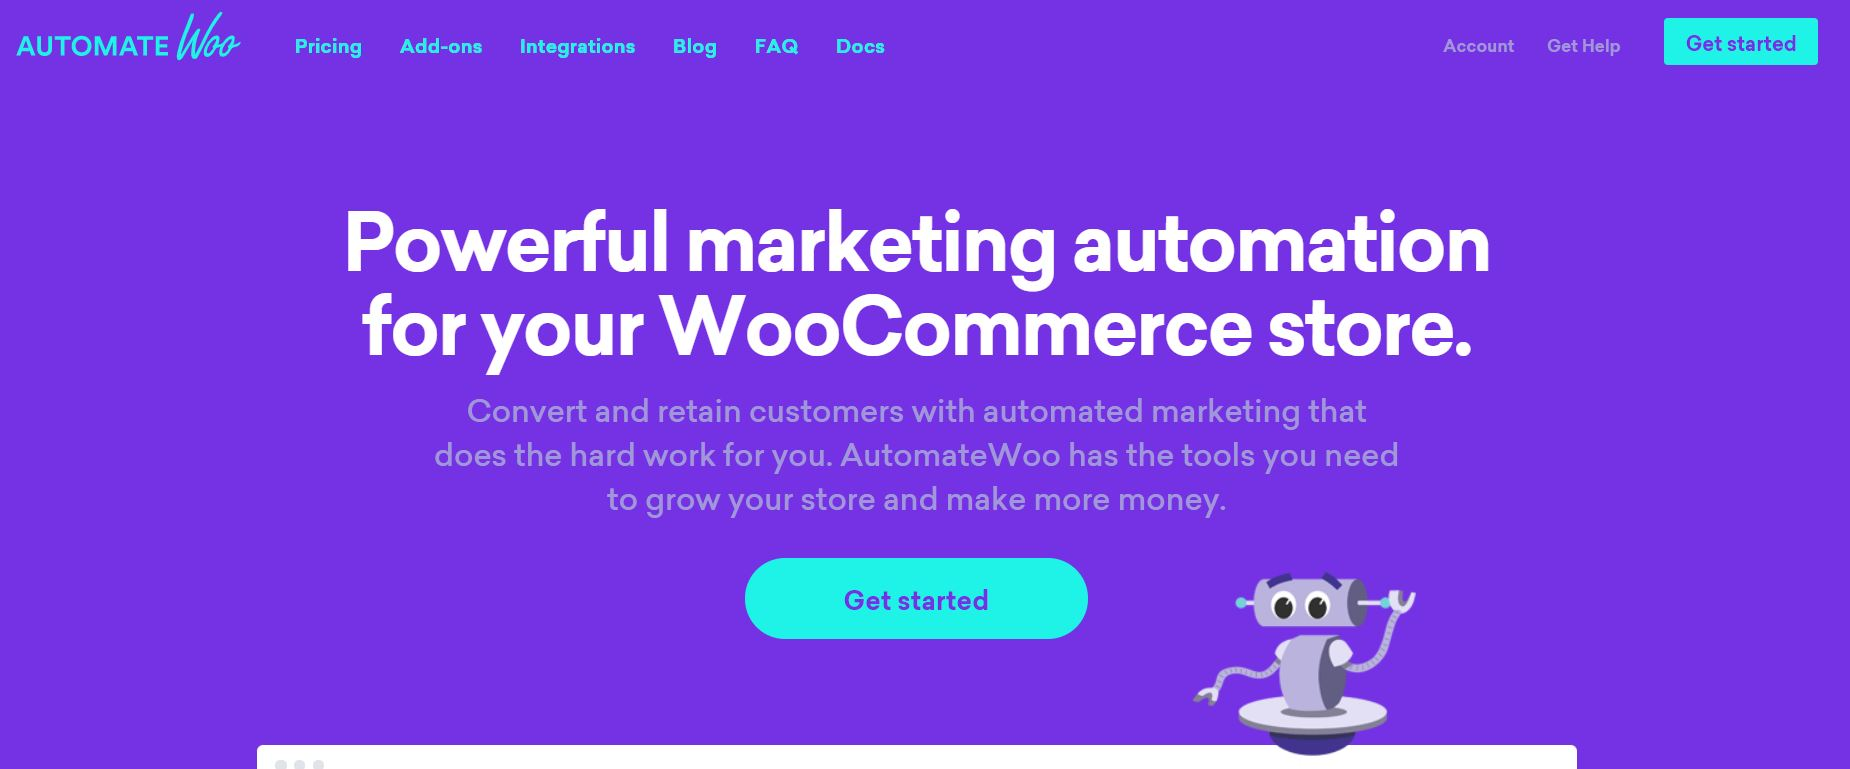 The AutomateWoo homepage